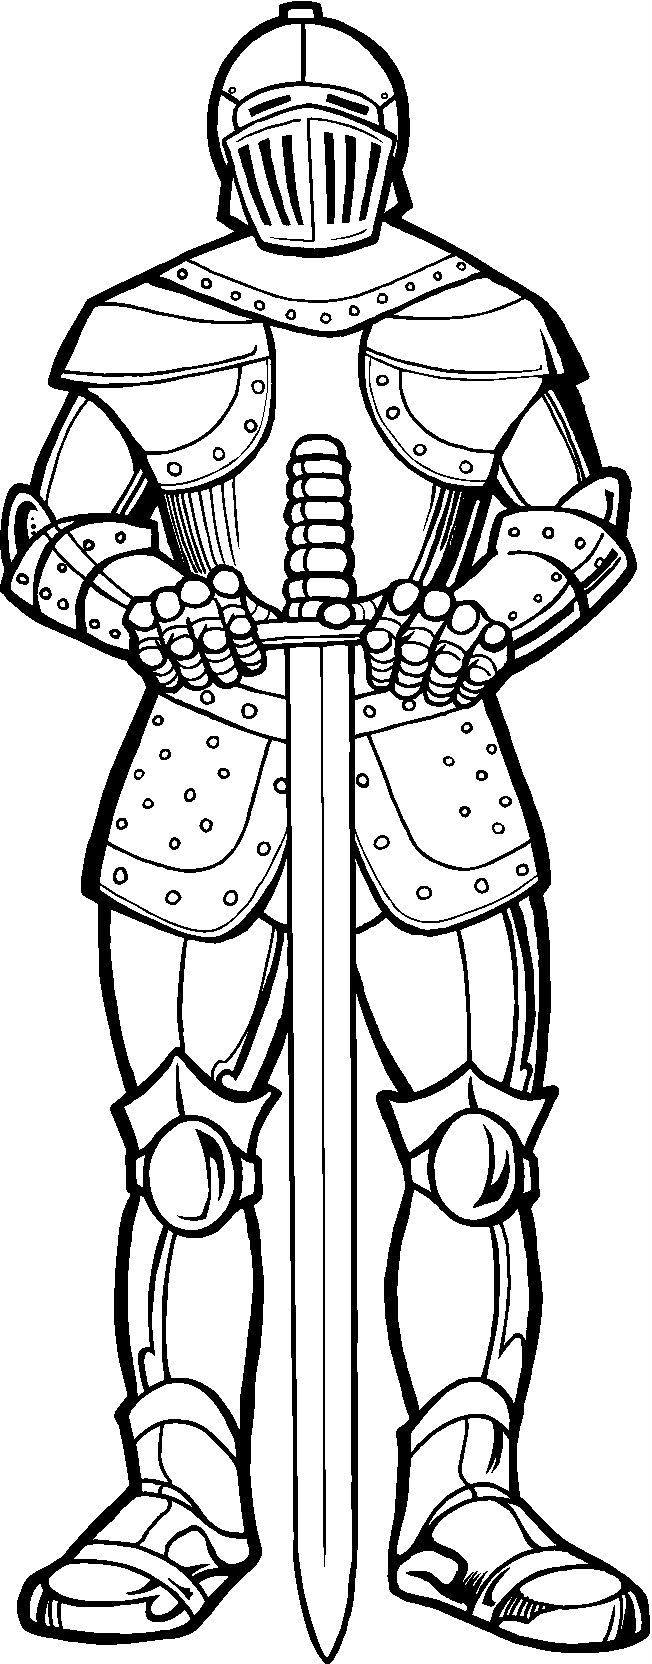 knights silence coloring pages for kids printable castles and knights coloring pages for kids